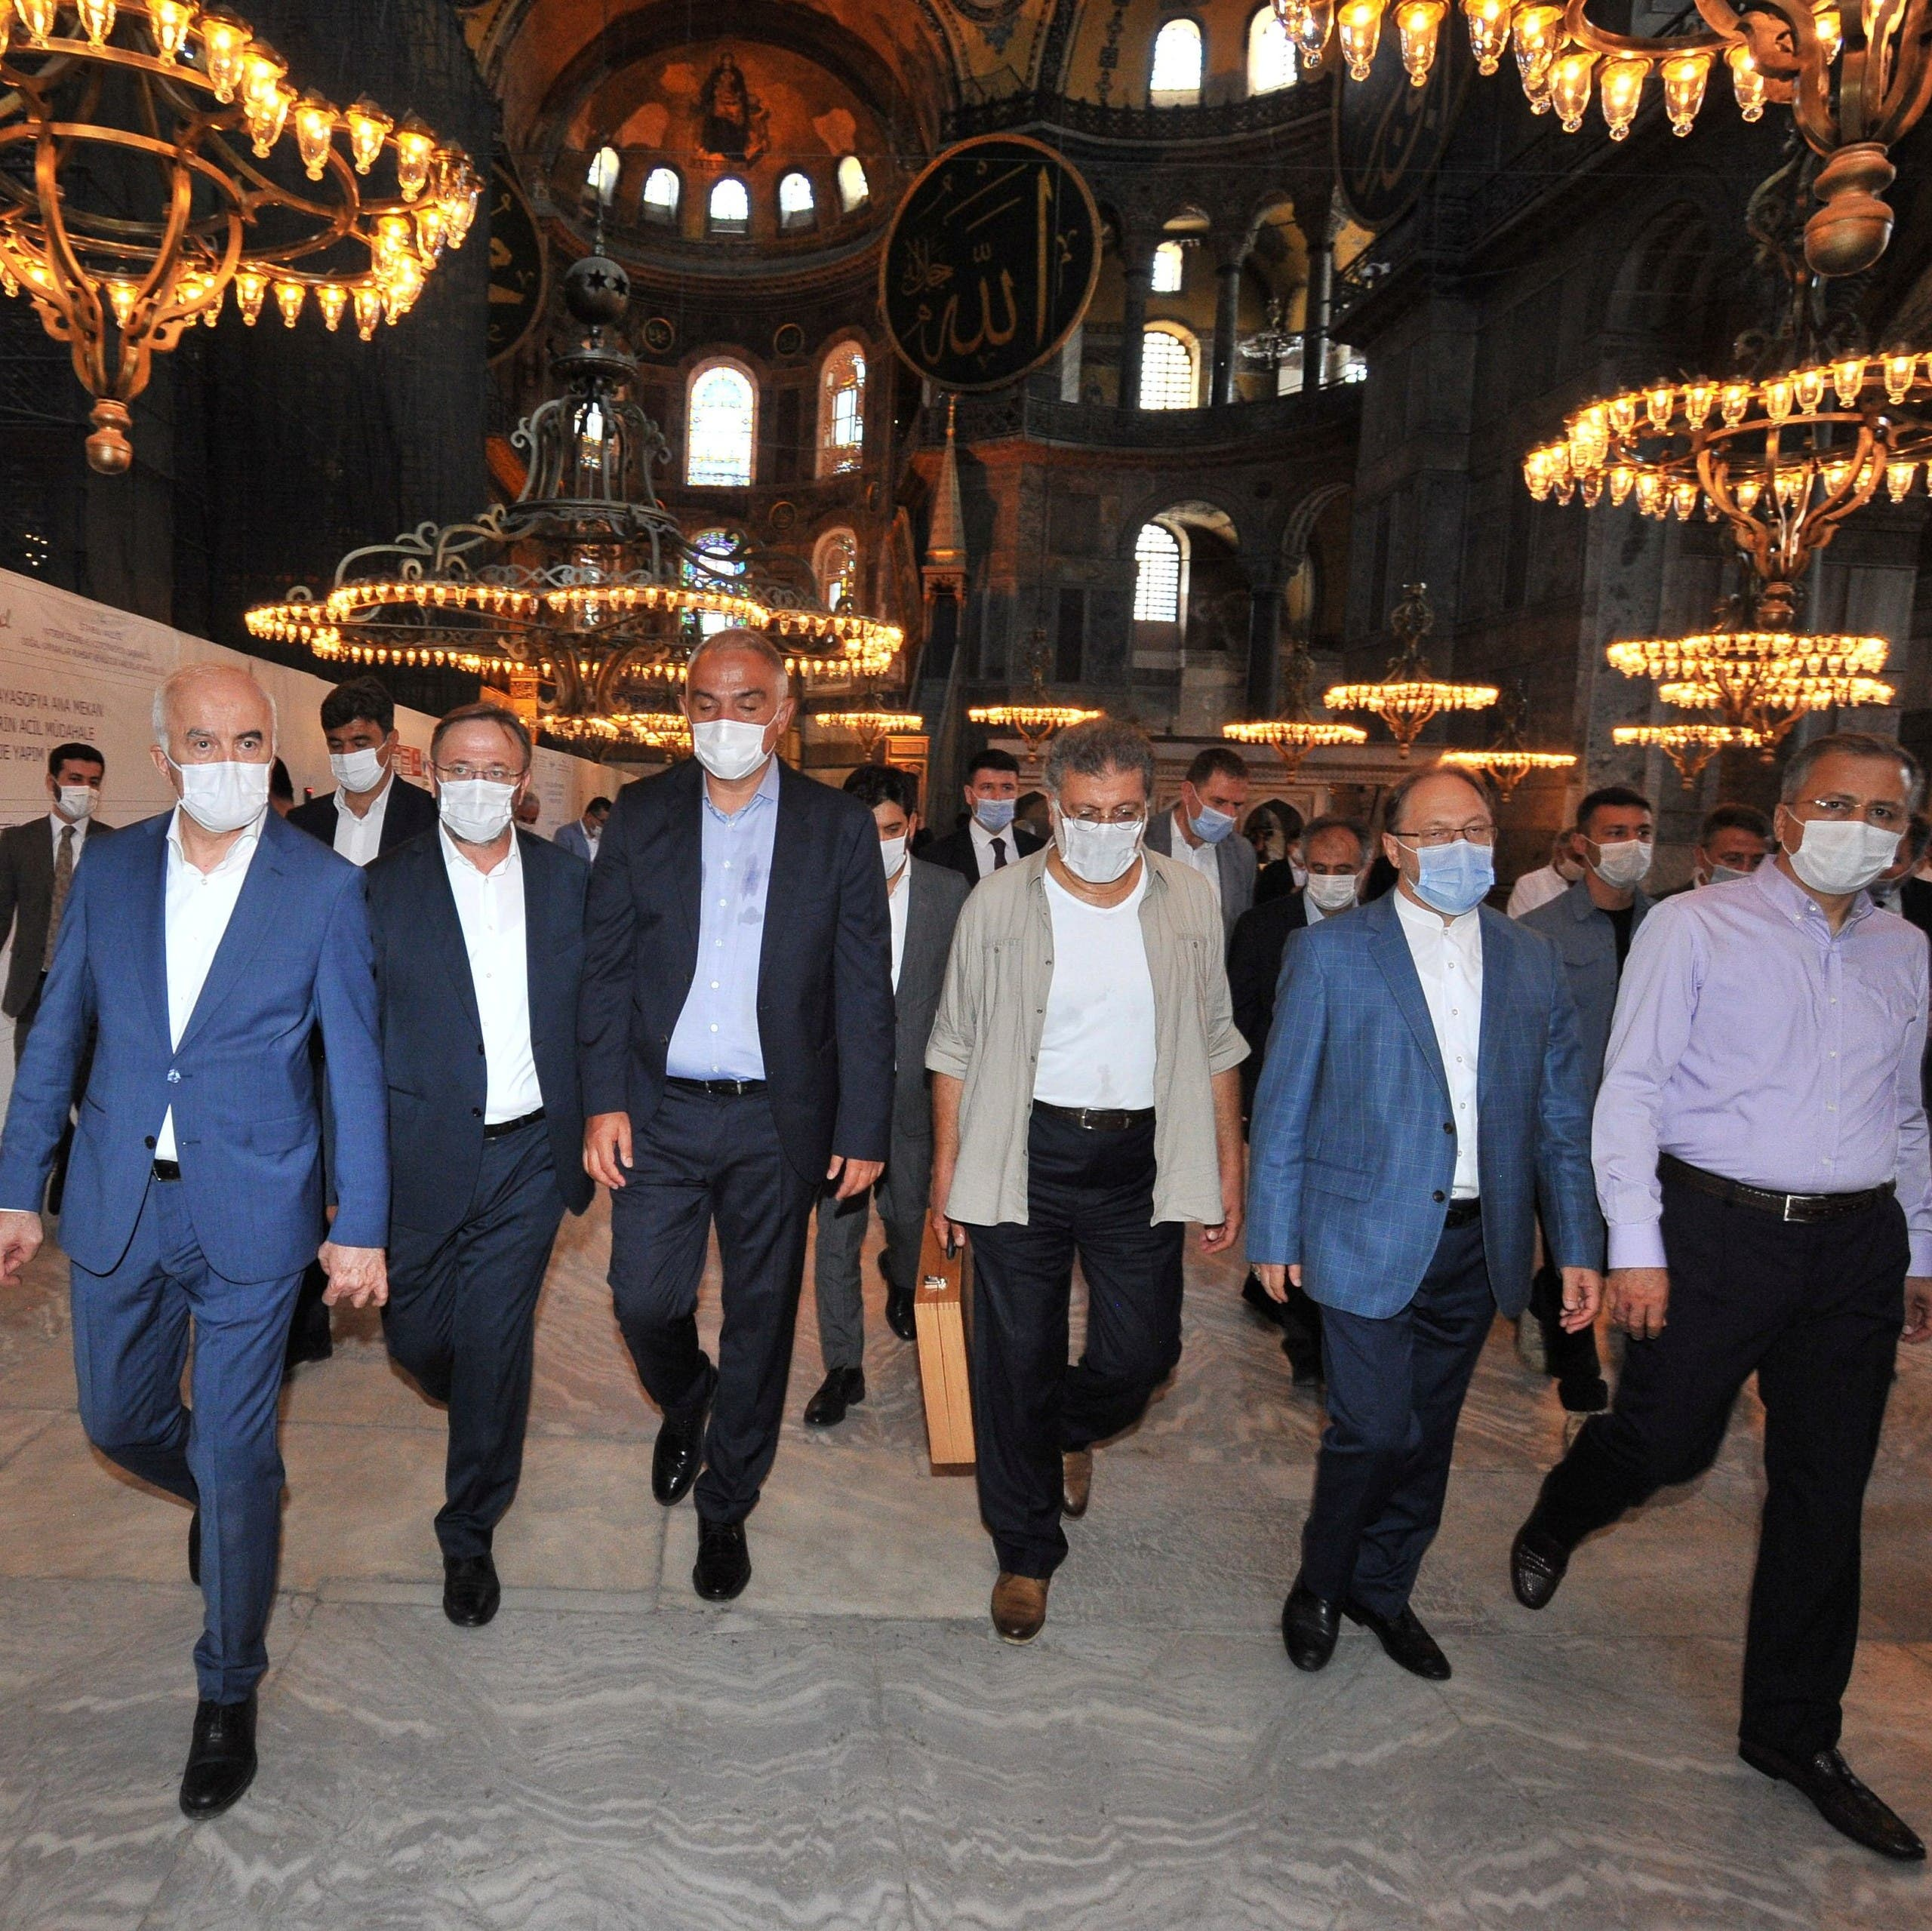 Turkey's Culture and Tourism Minister Mehmet Nuri Ersoy, accompanied by head of Turkey's Religious Affairs Directorate Ali Erbas, visits the Hagia Sophia or Ayasofya-i Kebir Camii in Istanbul, Turkey, July 12, 2020. (Turkish Culture and Tourism Ministry/Handout via Reuters)